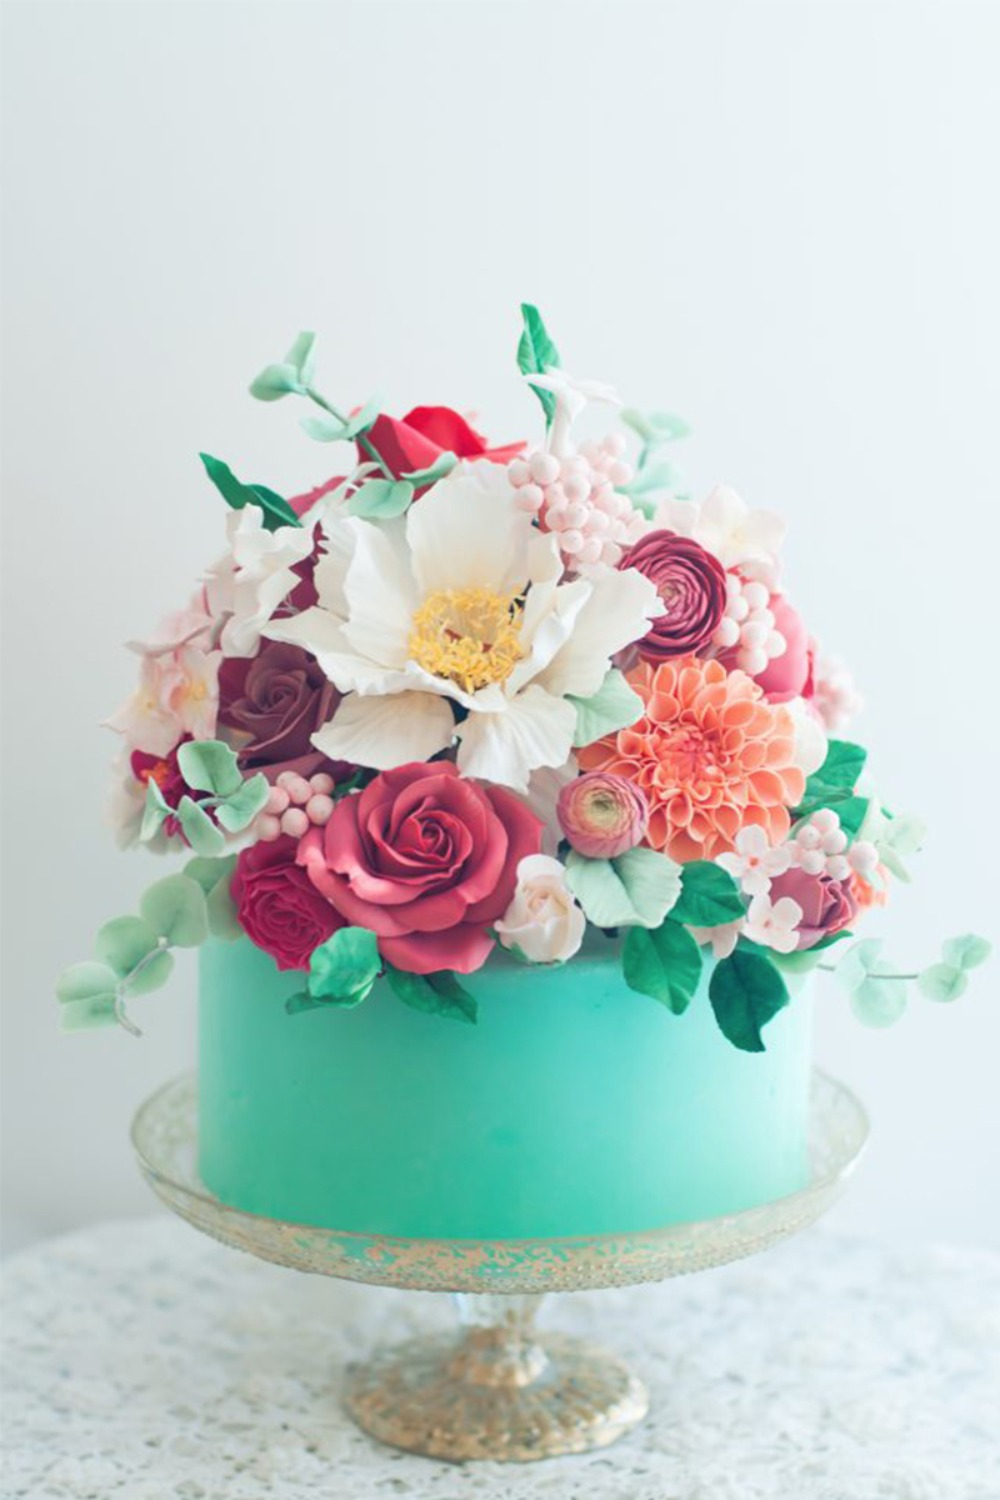 Trending 25 sweetheart wedding cakes 426 25 sweetheart wedding cakes izmirmasajfo